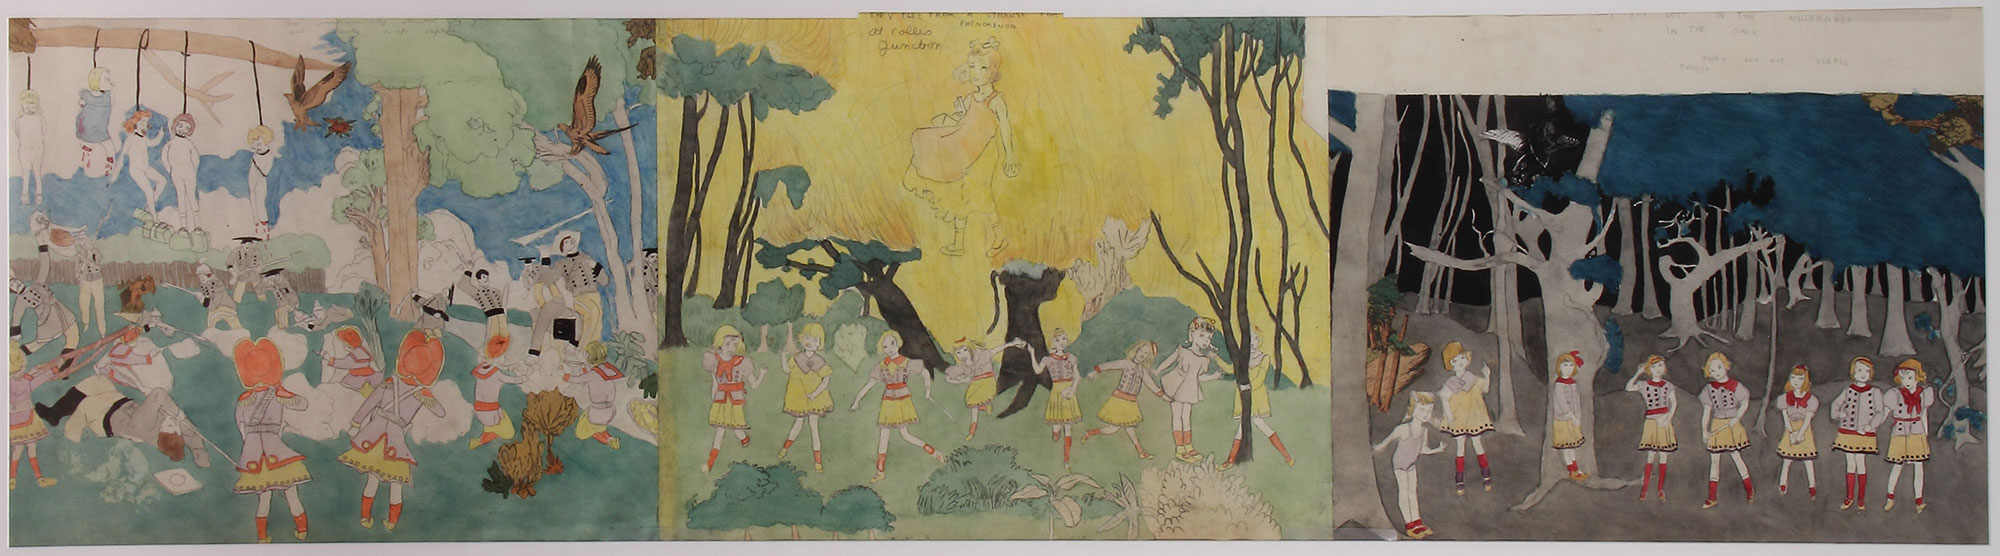 Henry Darger, Ohne Titel, undatiert, Aquarell und Bleistift auf Papier, 46 x 178 cm, Collection of Robert A. Roth